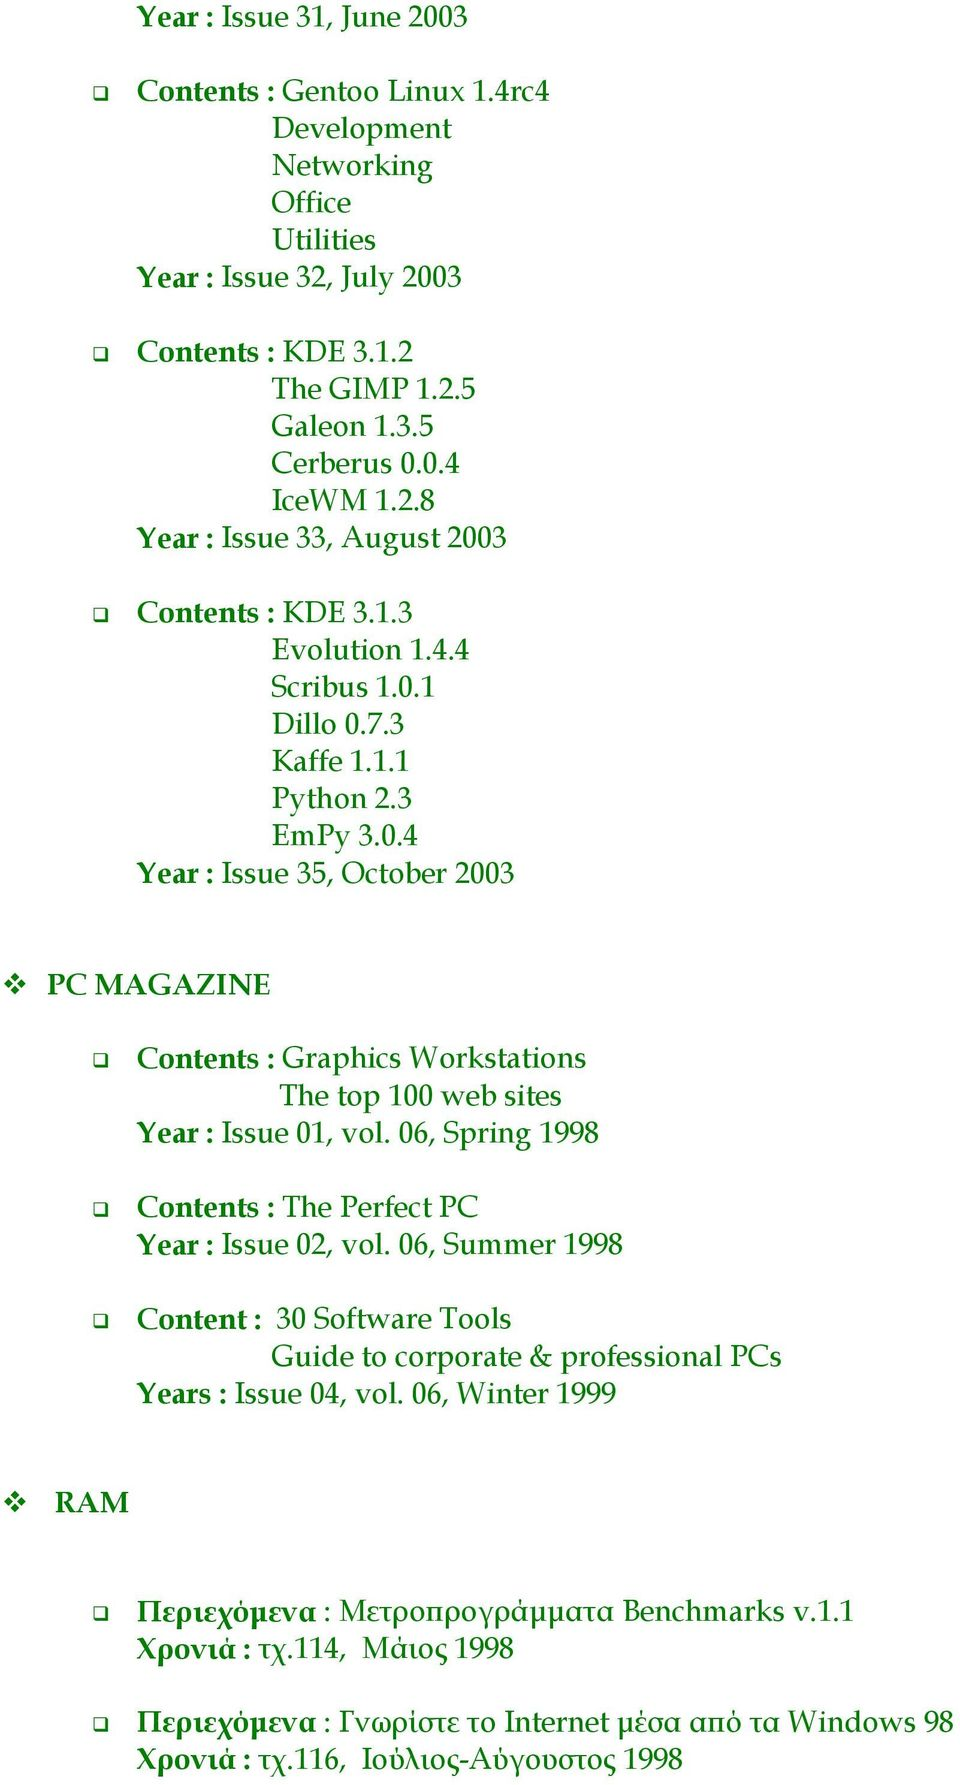 """PC MAGAZINE #"" Contents : Graphics Workstations The top 100 web sites Year : Issue 01, vol. 06, Spring 1998 #"" Contents : The Perfect PC Year : Issue 02, vol."